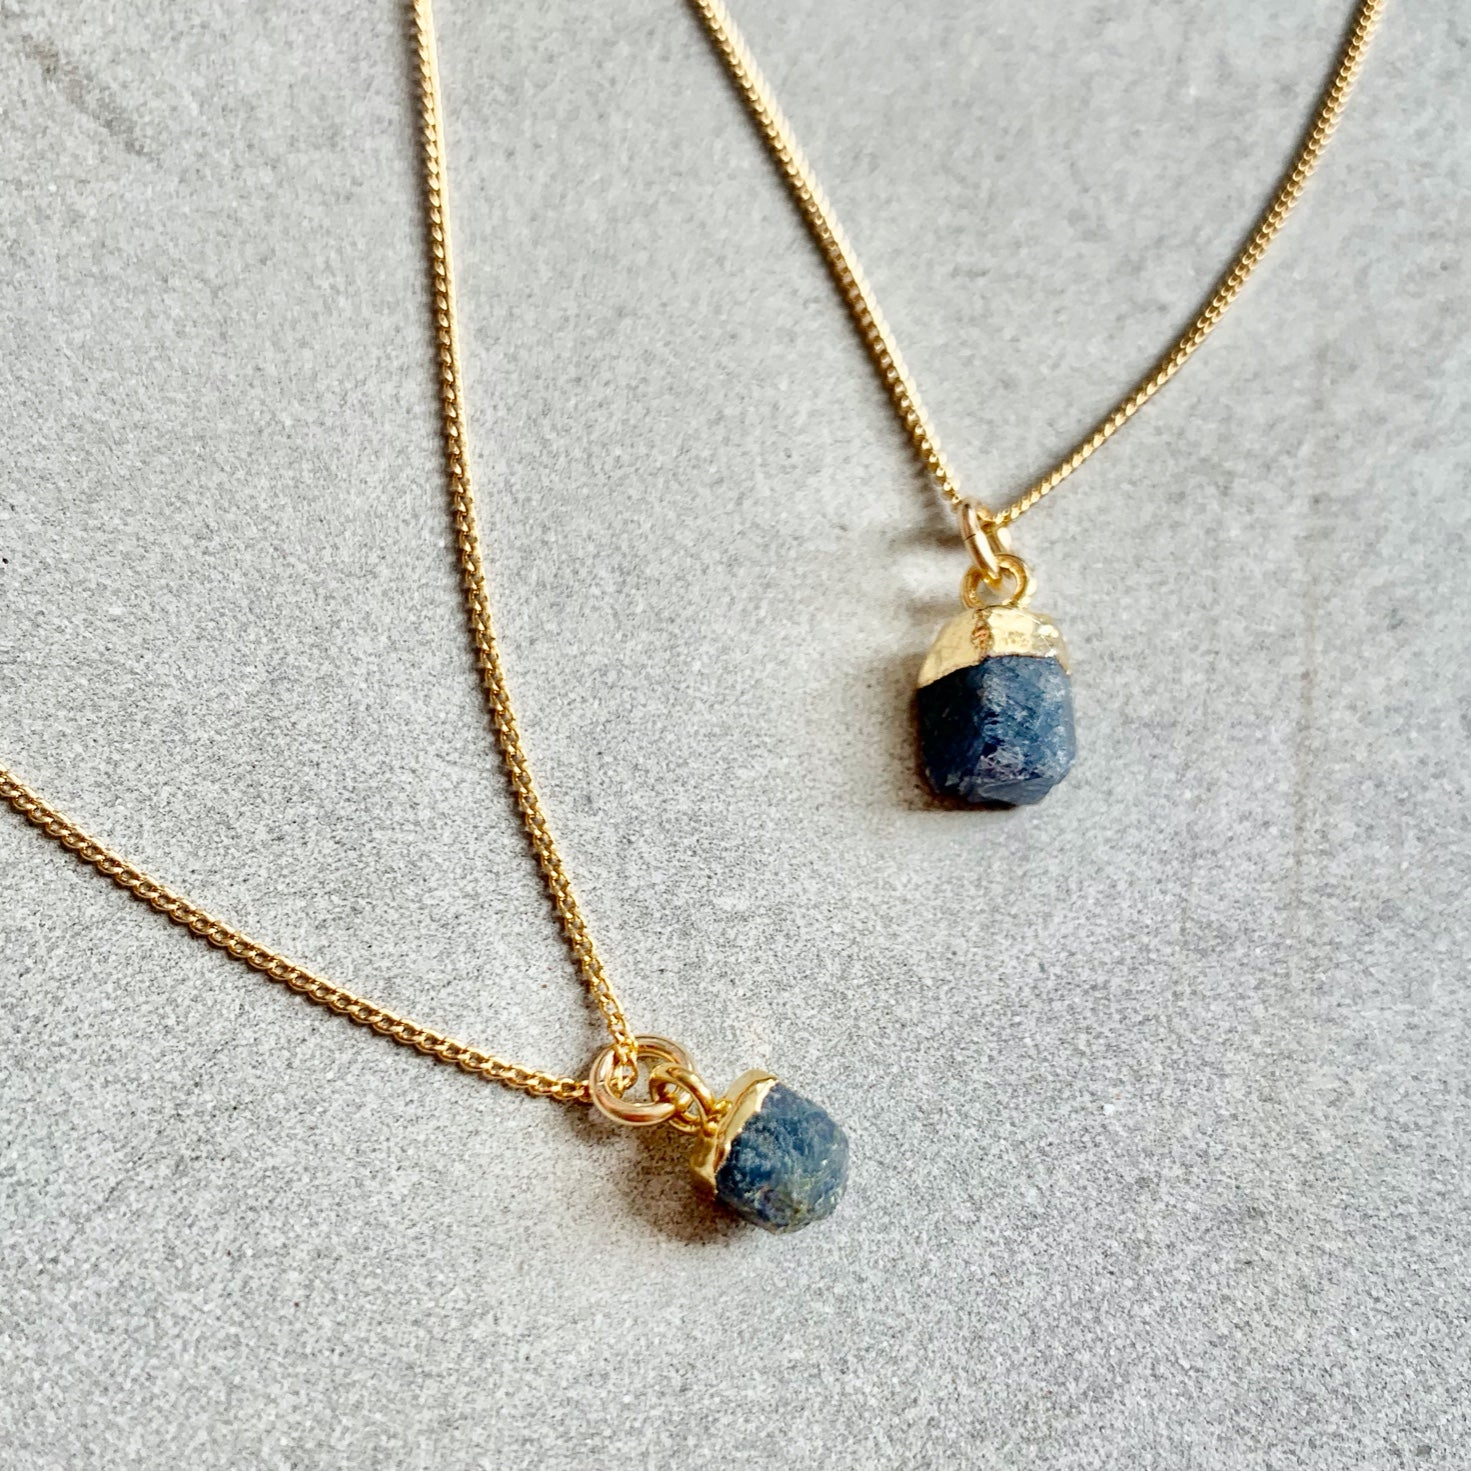 Birthstone Necklace - SEPTEMBER, Sapphire - Decadorn